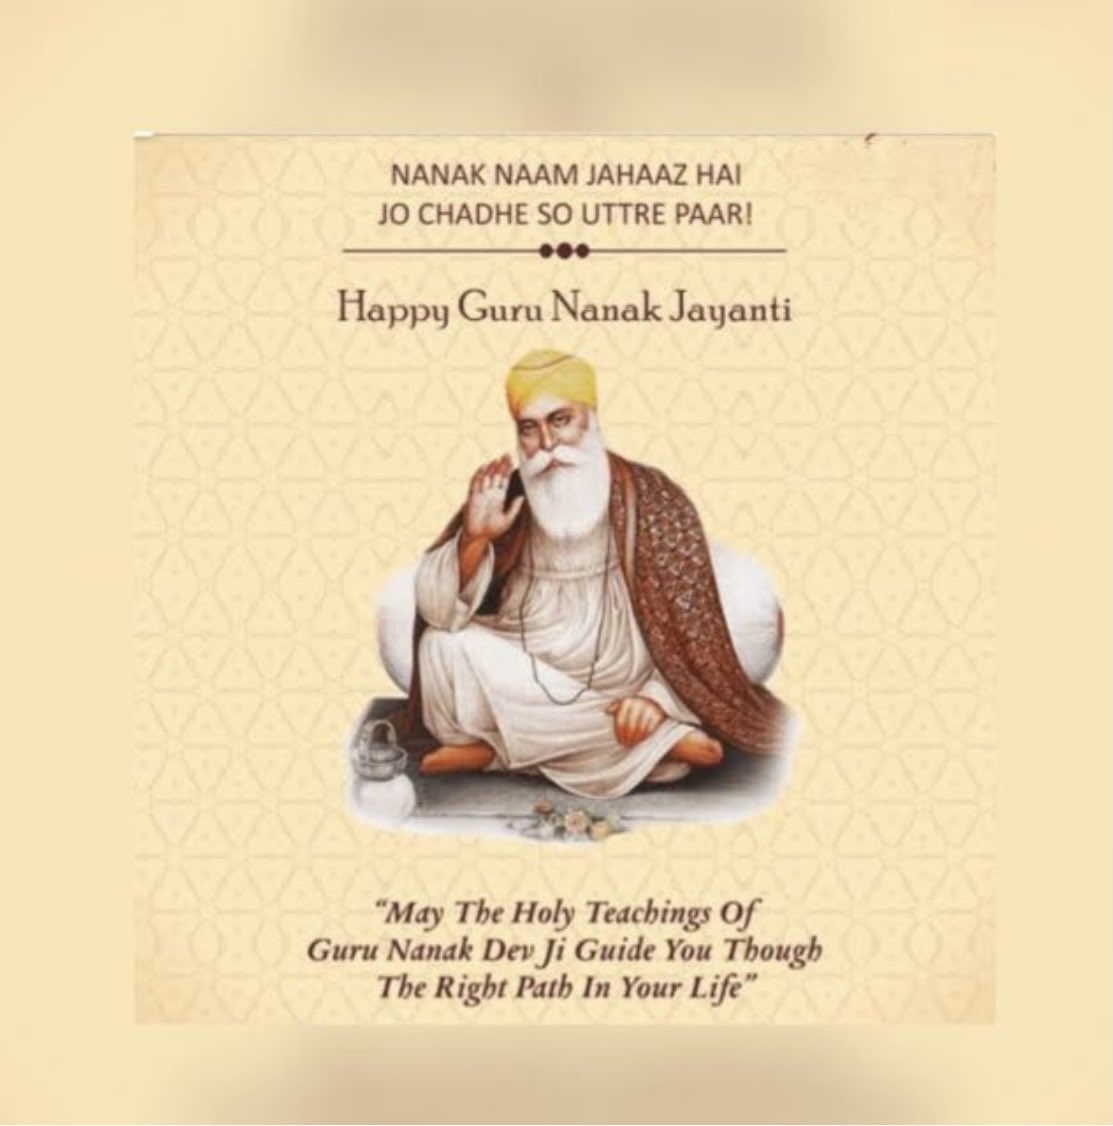 Replying to @KapilSharmaK9: Happy Guru Nanak jayanti 🙏 #Gurpurab #GuruNanakJayanti2020